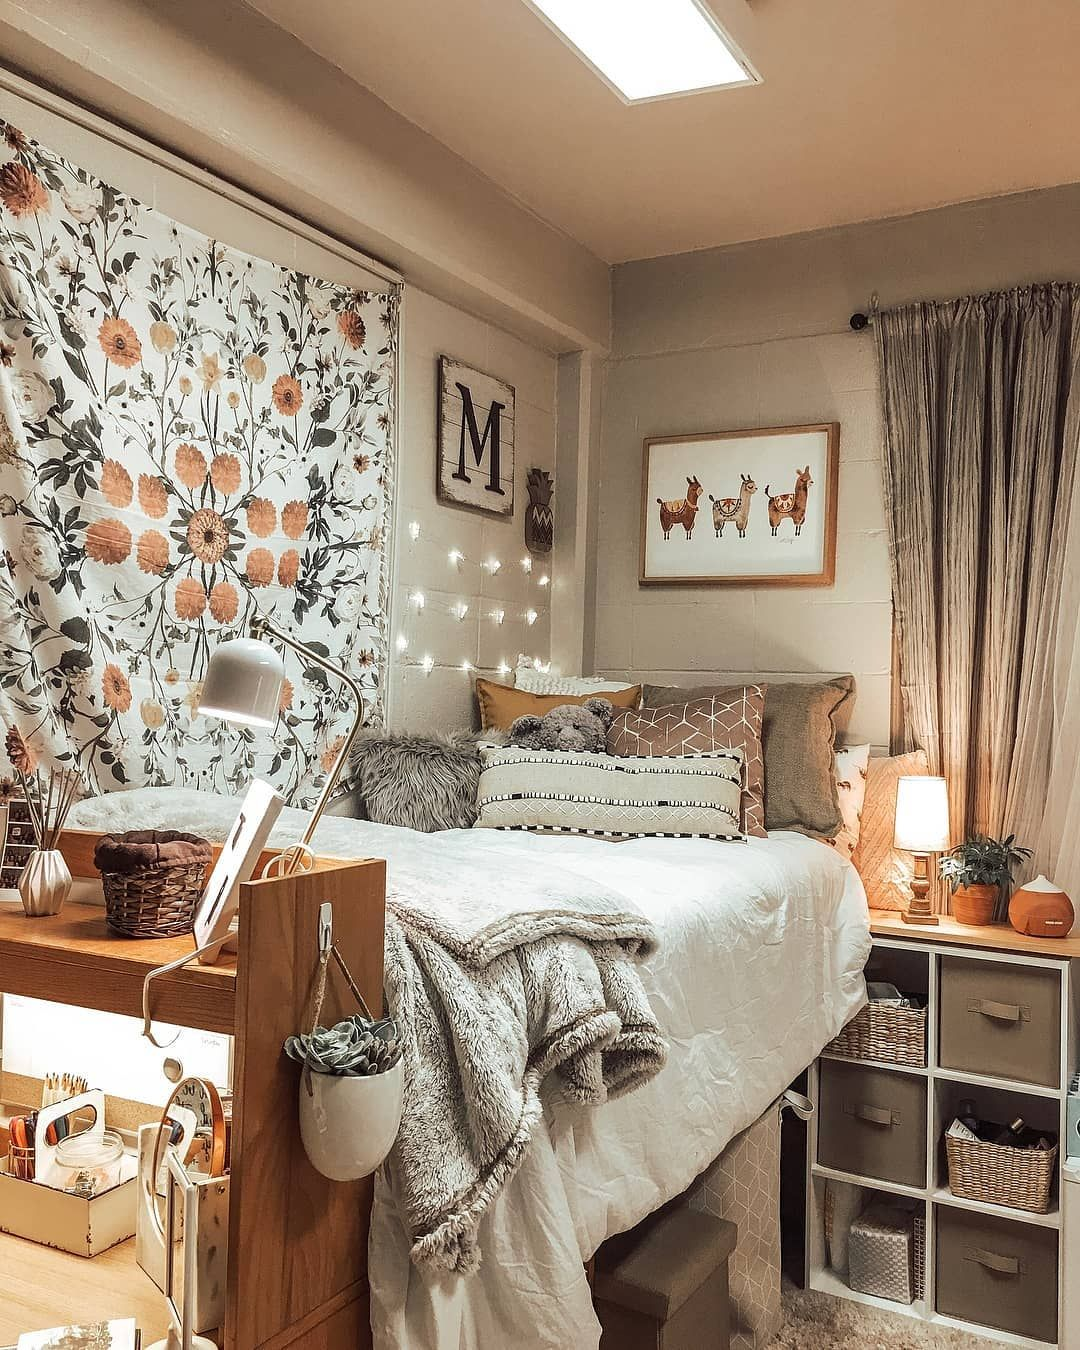 10 Cute Dorm Rooms You Will Want To Copy - SavvyCollegeGirl